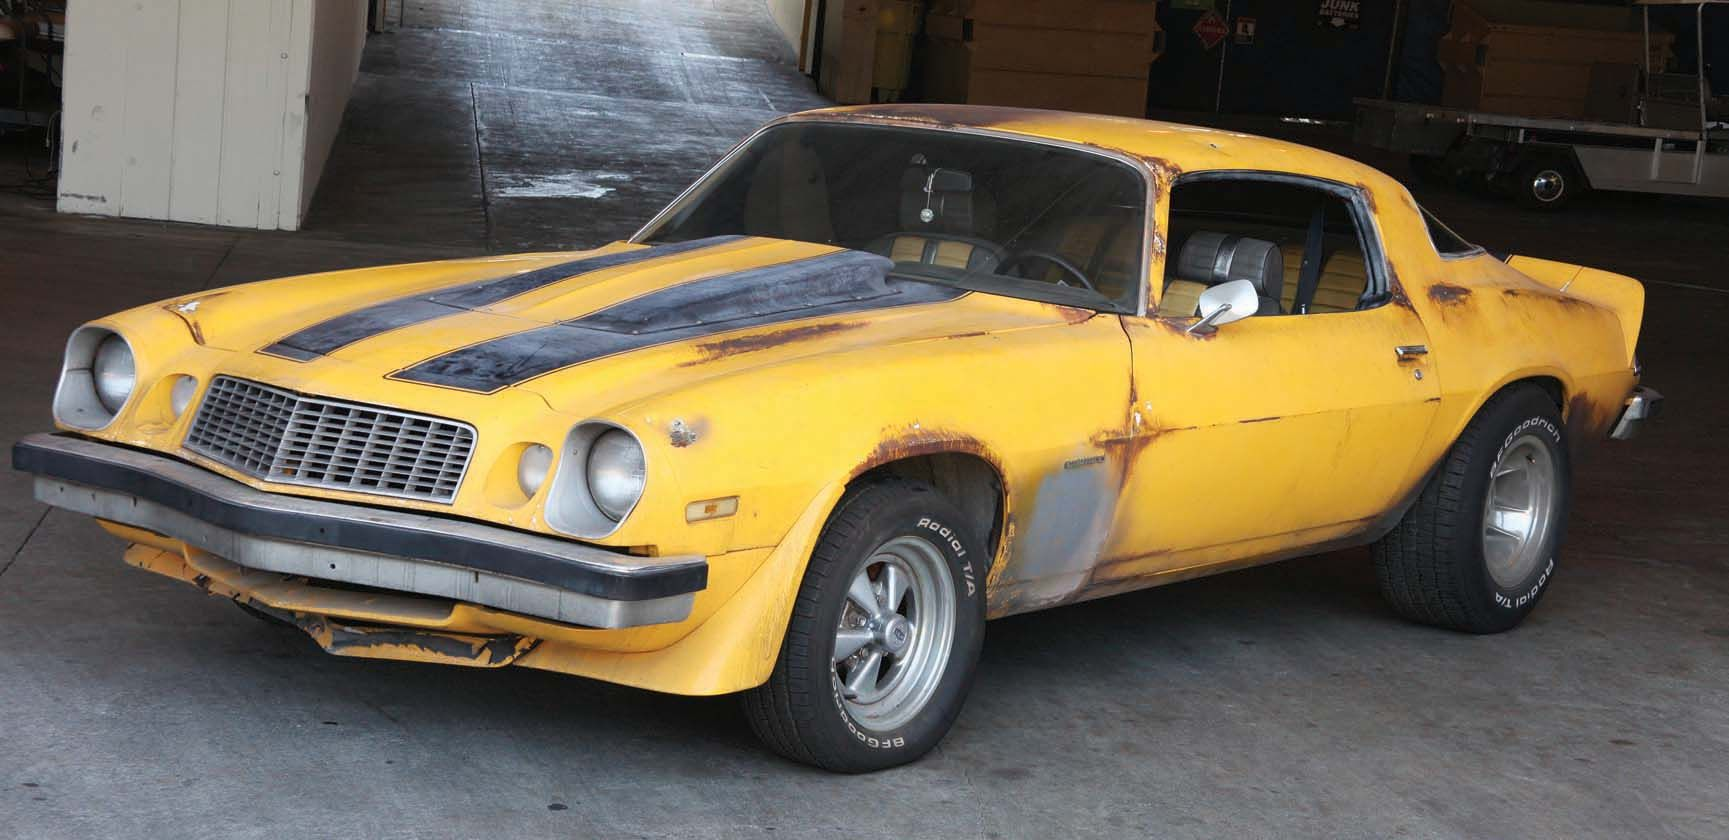 Transformers Movie Blebee Prior To Changing Into The Modern Day Chevrolet Camaro